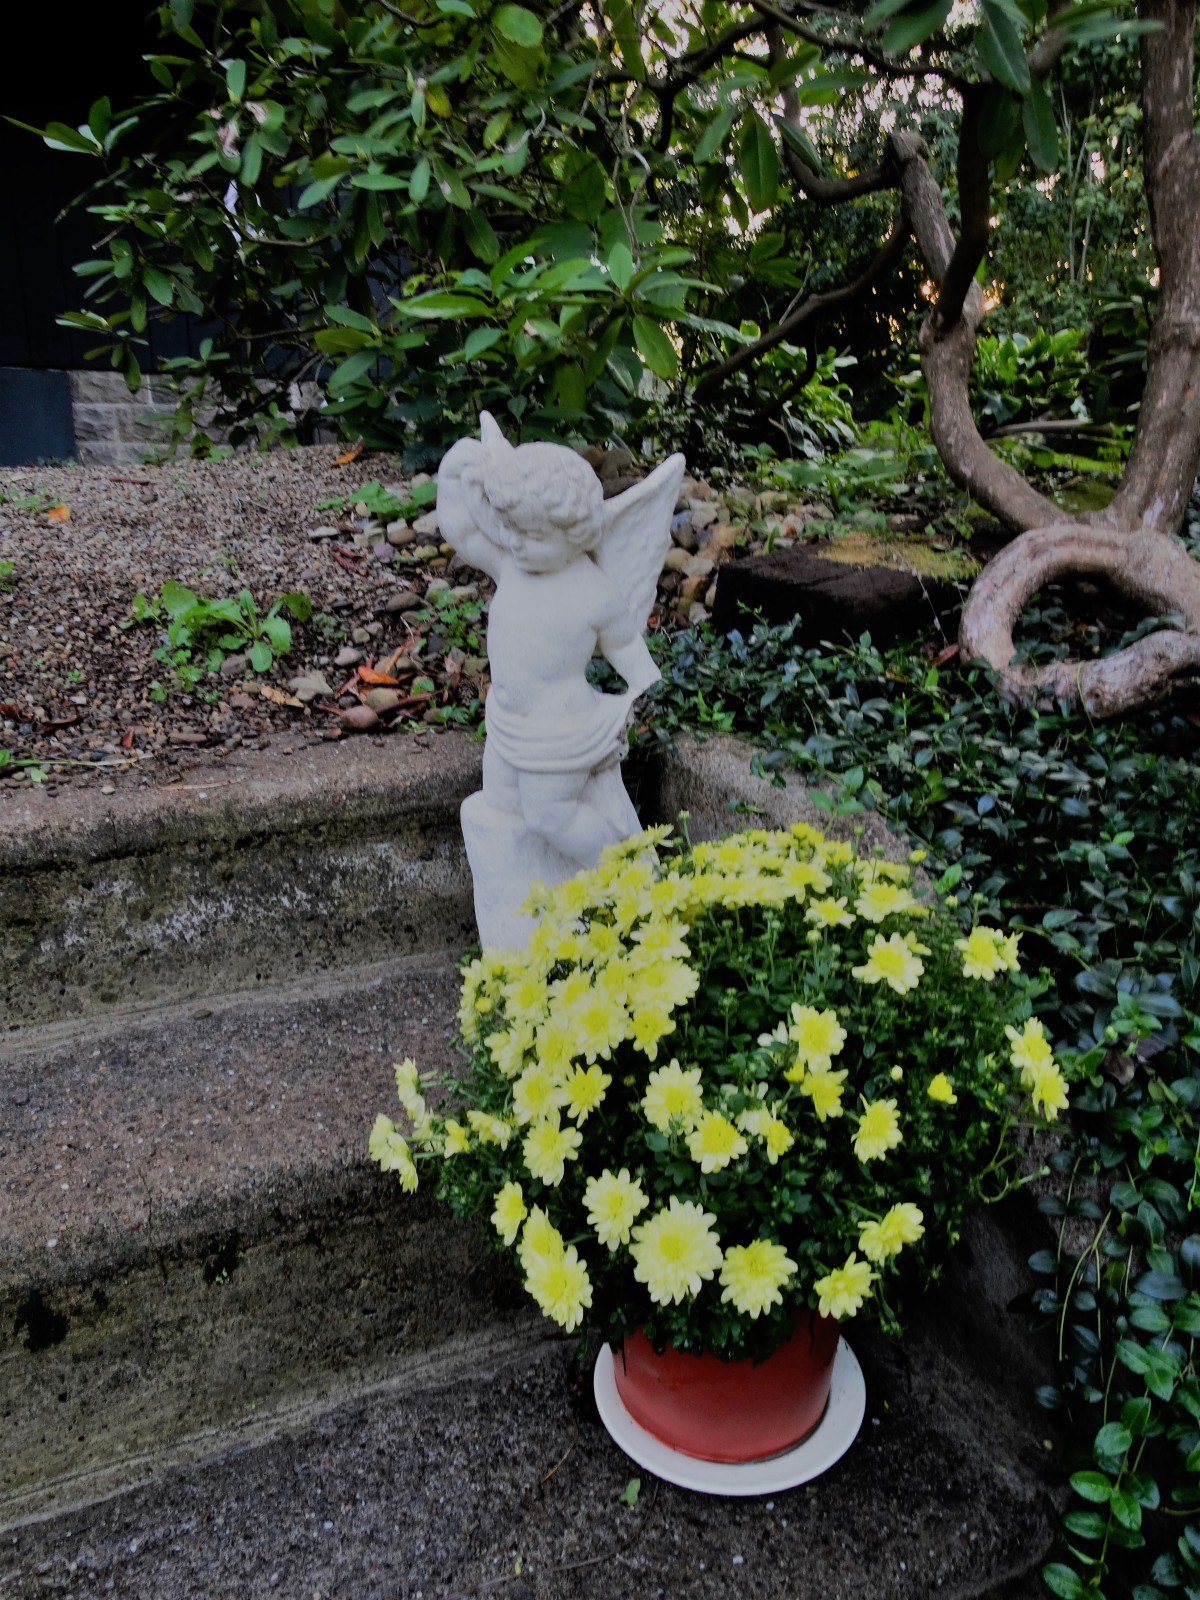 Puti Statue on stone stairway, a pot full of yellow mums -